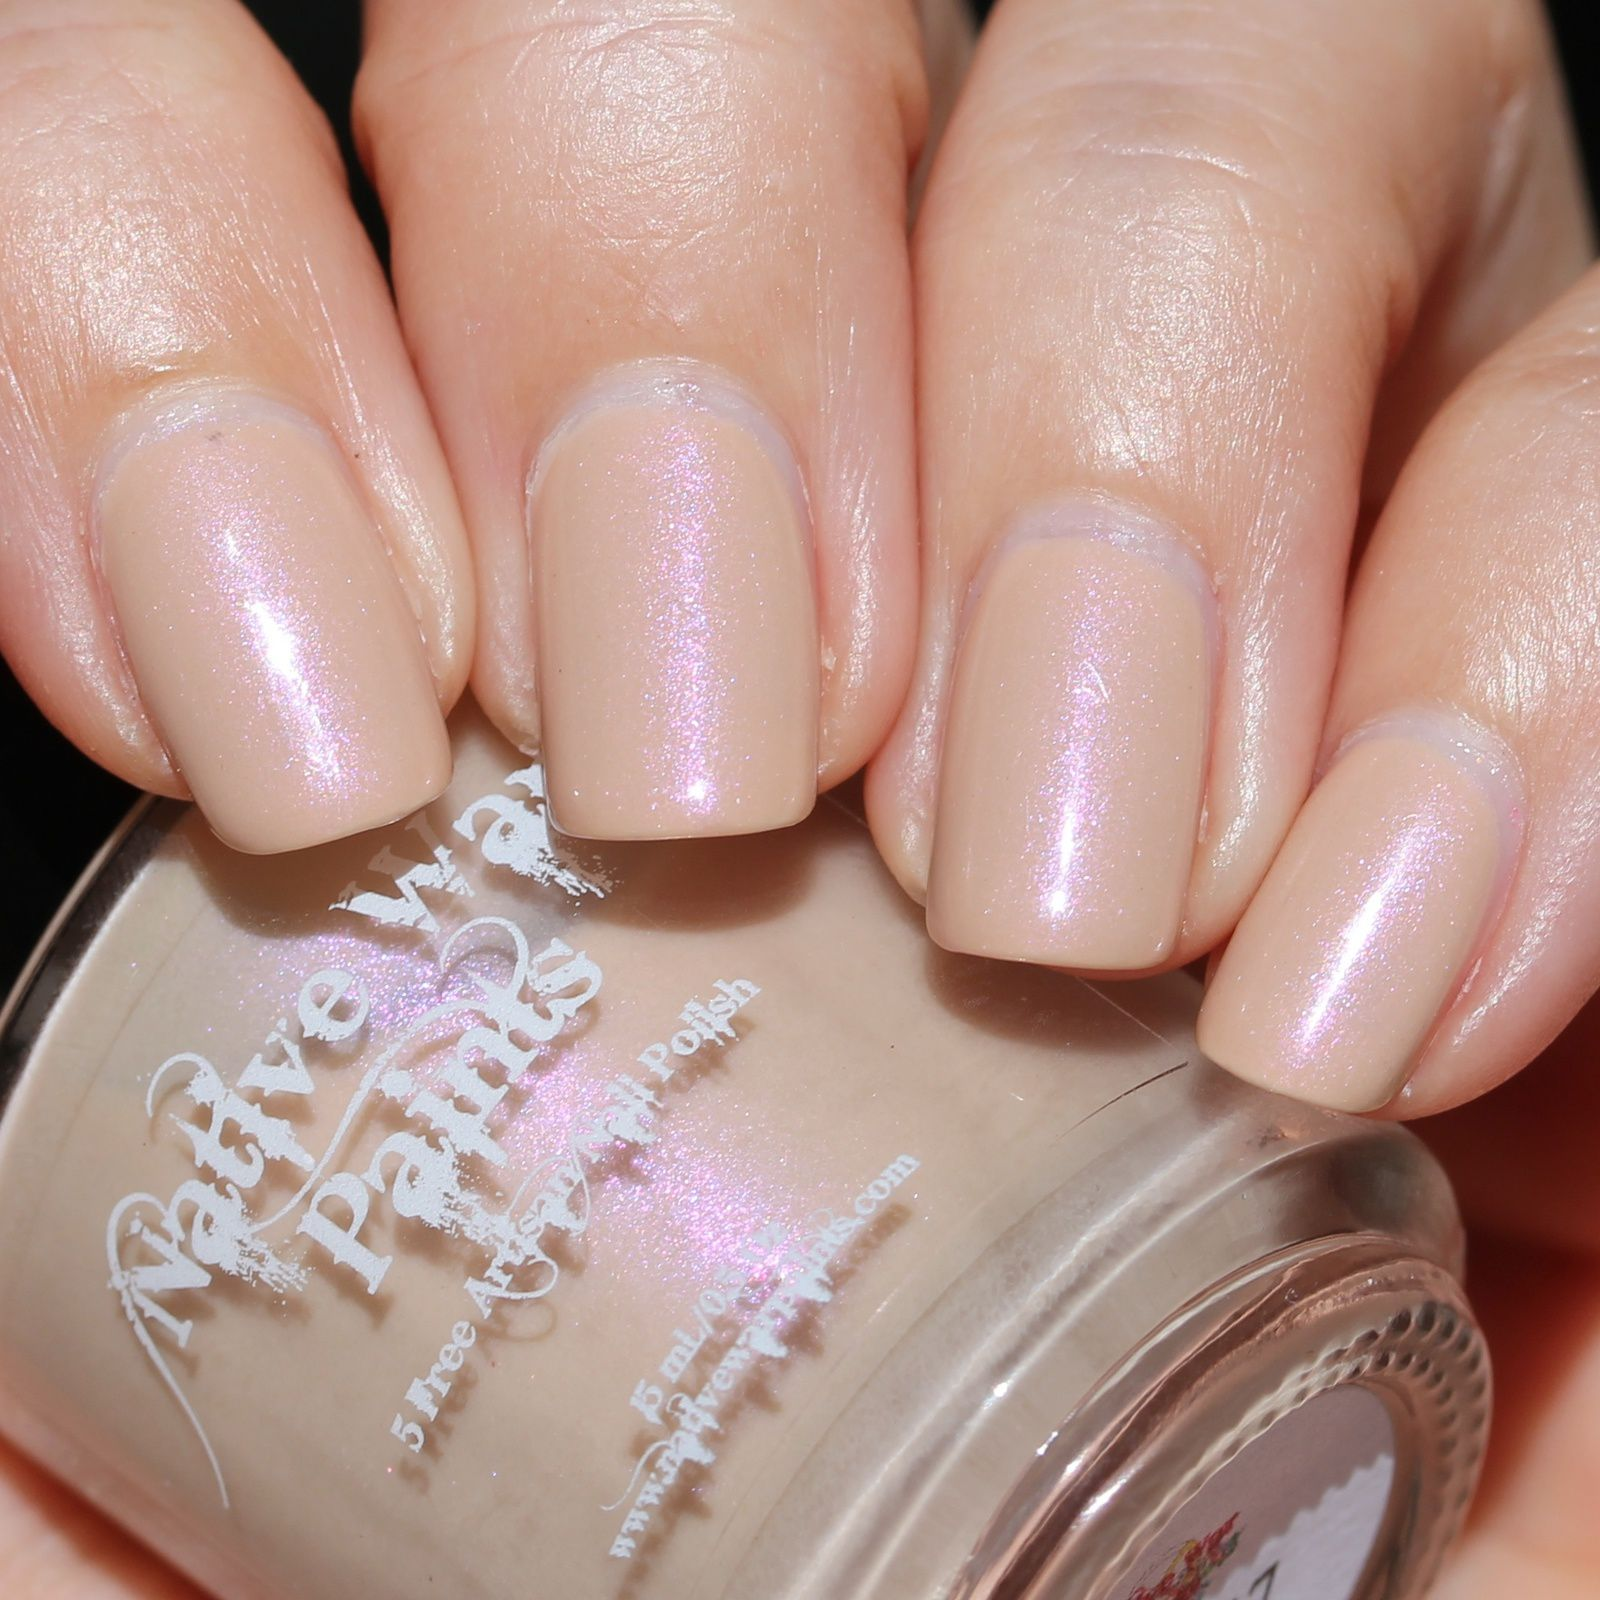 Sally Hansen Complete Care 4-in-1 Extra Moisturizing Nail Treatment / Native War Paints May 2017 / Lilypad Lacquer Crystal Clear Top Coat